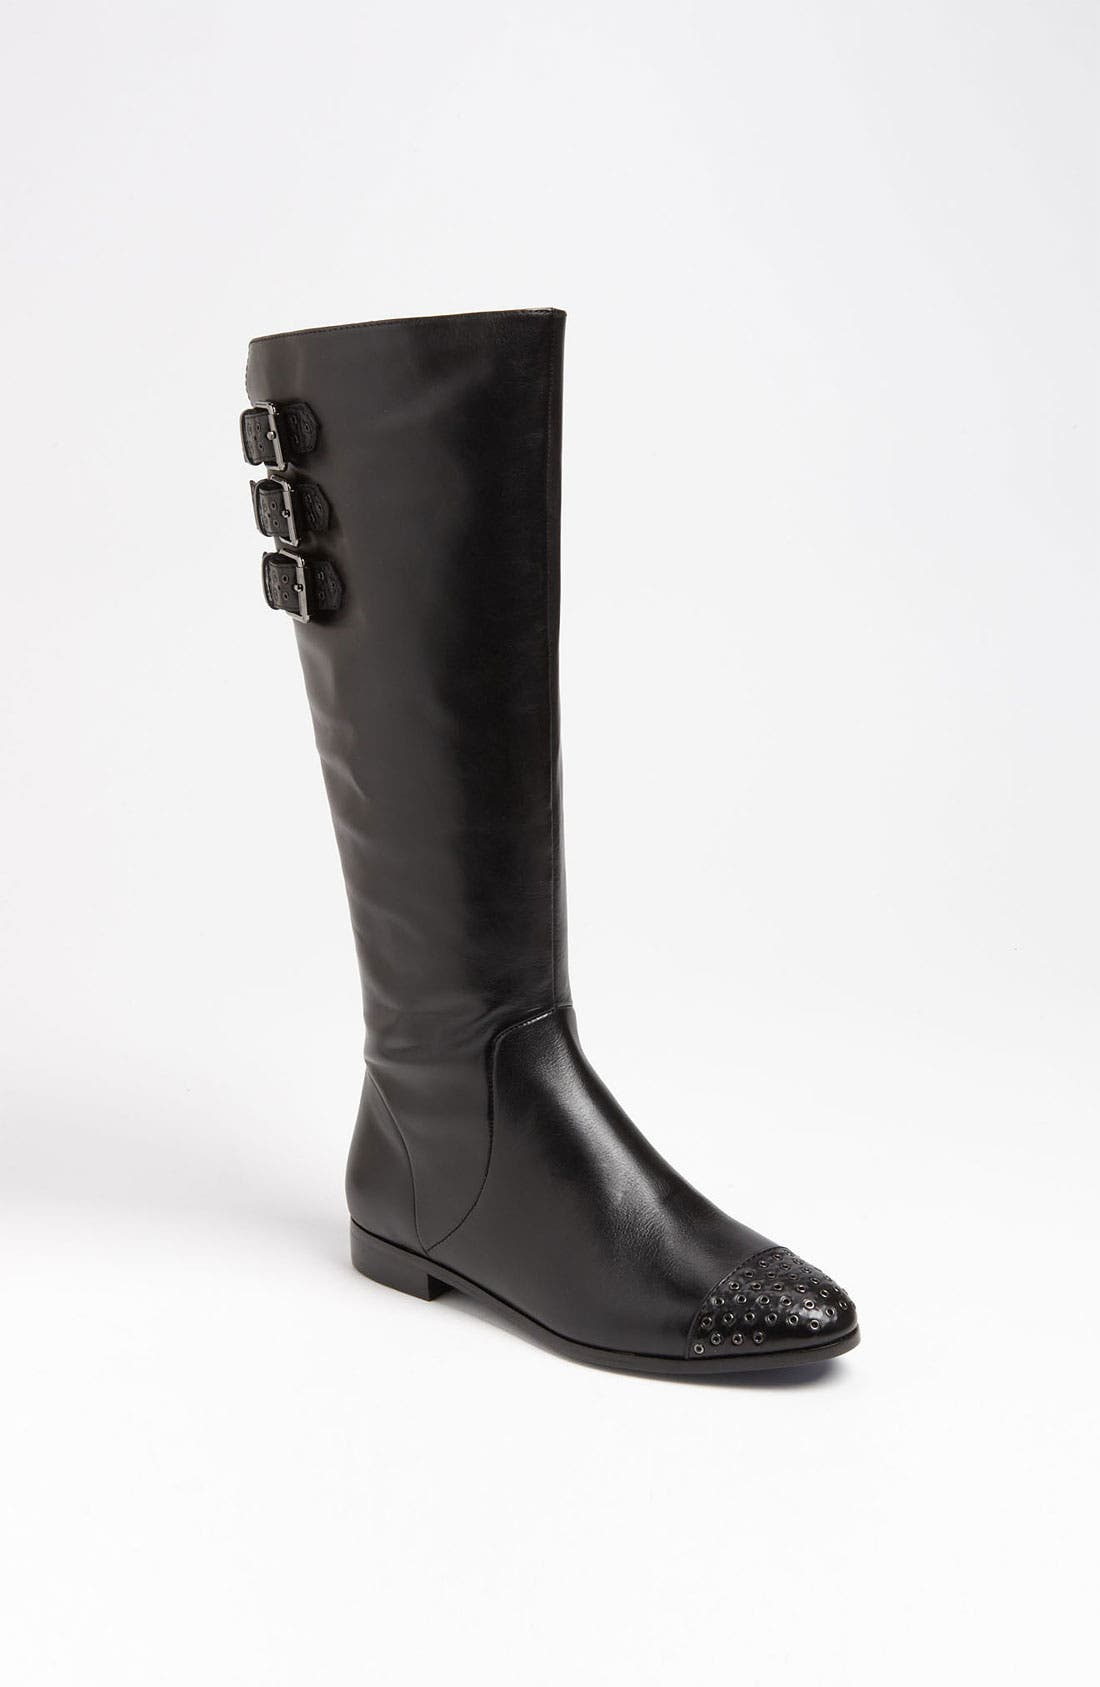 Alternate Image 1 Selected - Rebecca Minkoff 'Rogan' Boot